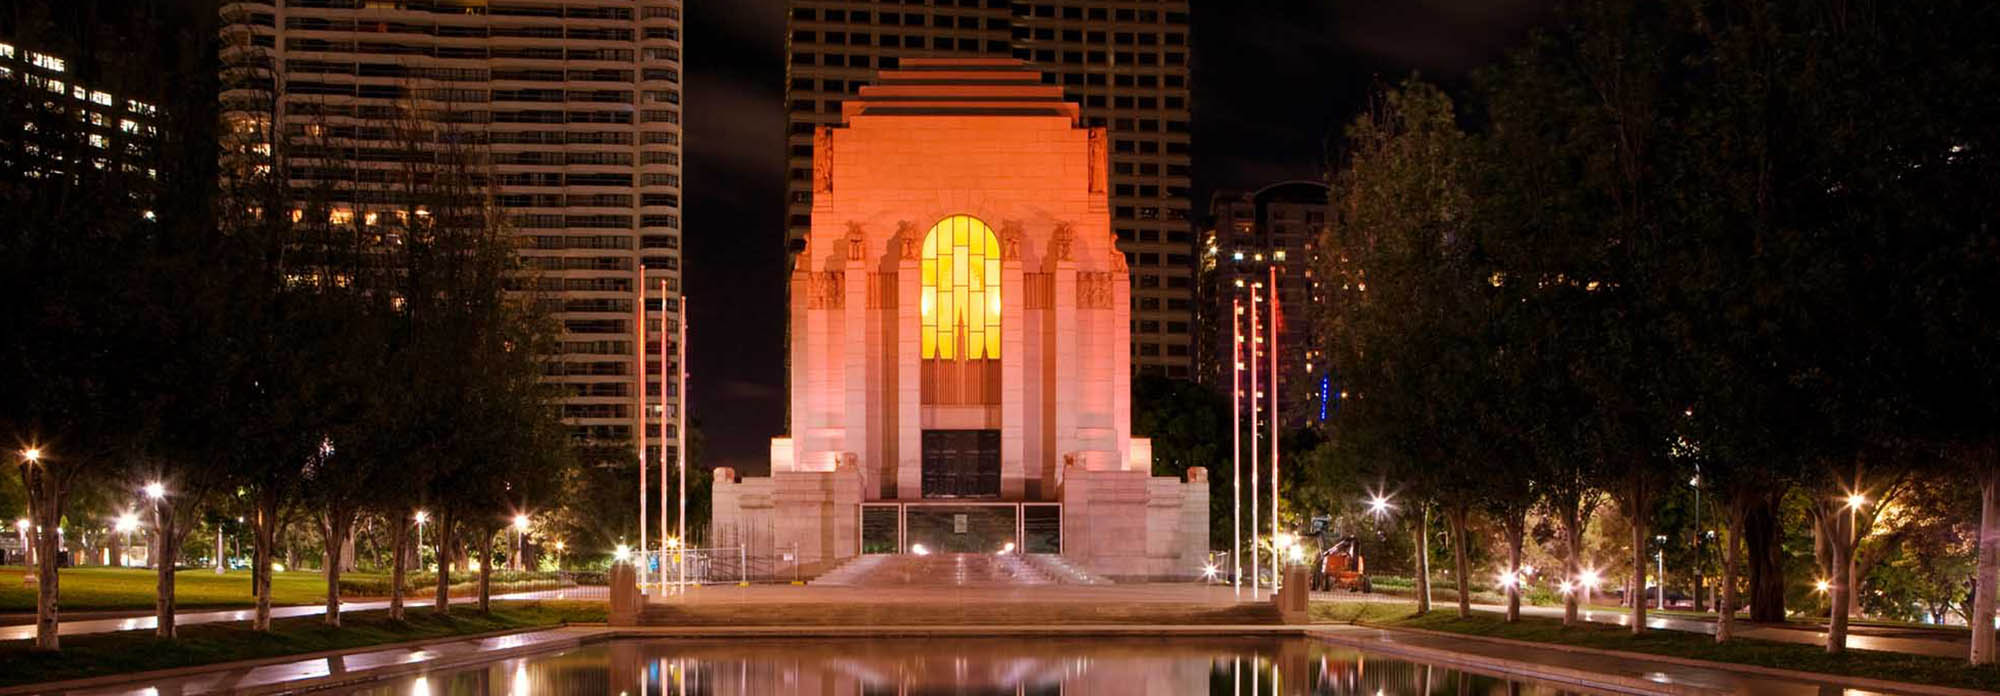 Anzac Memorial Hyde Park at Night - Photo by Rob Tuckwell